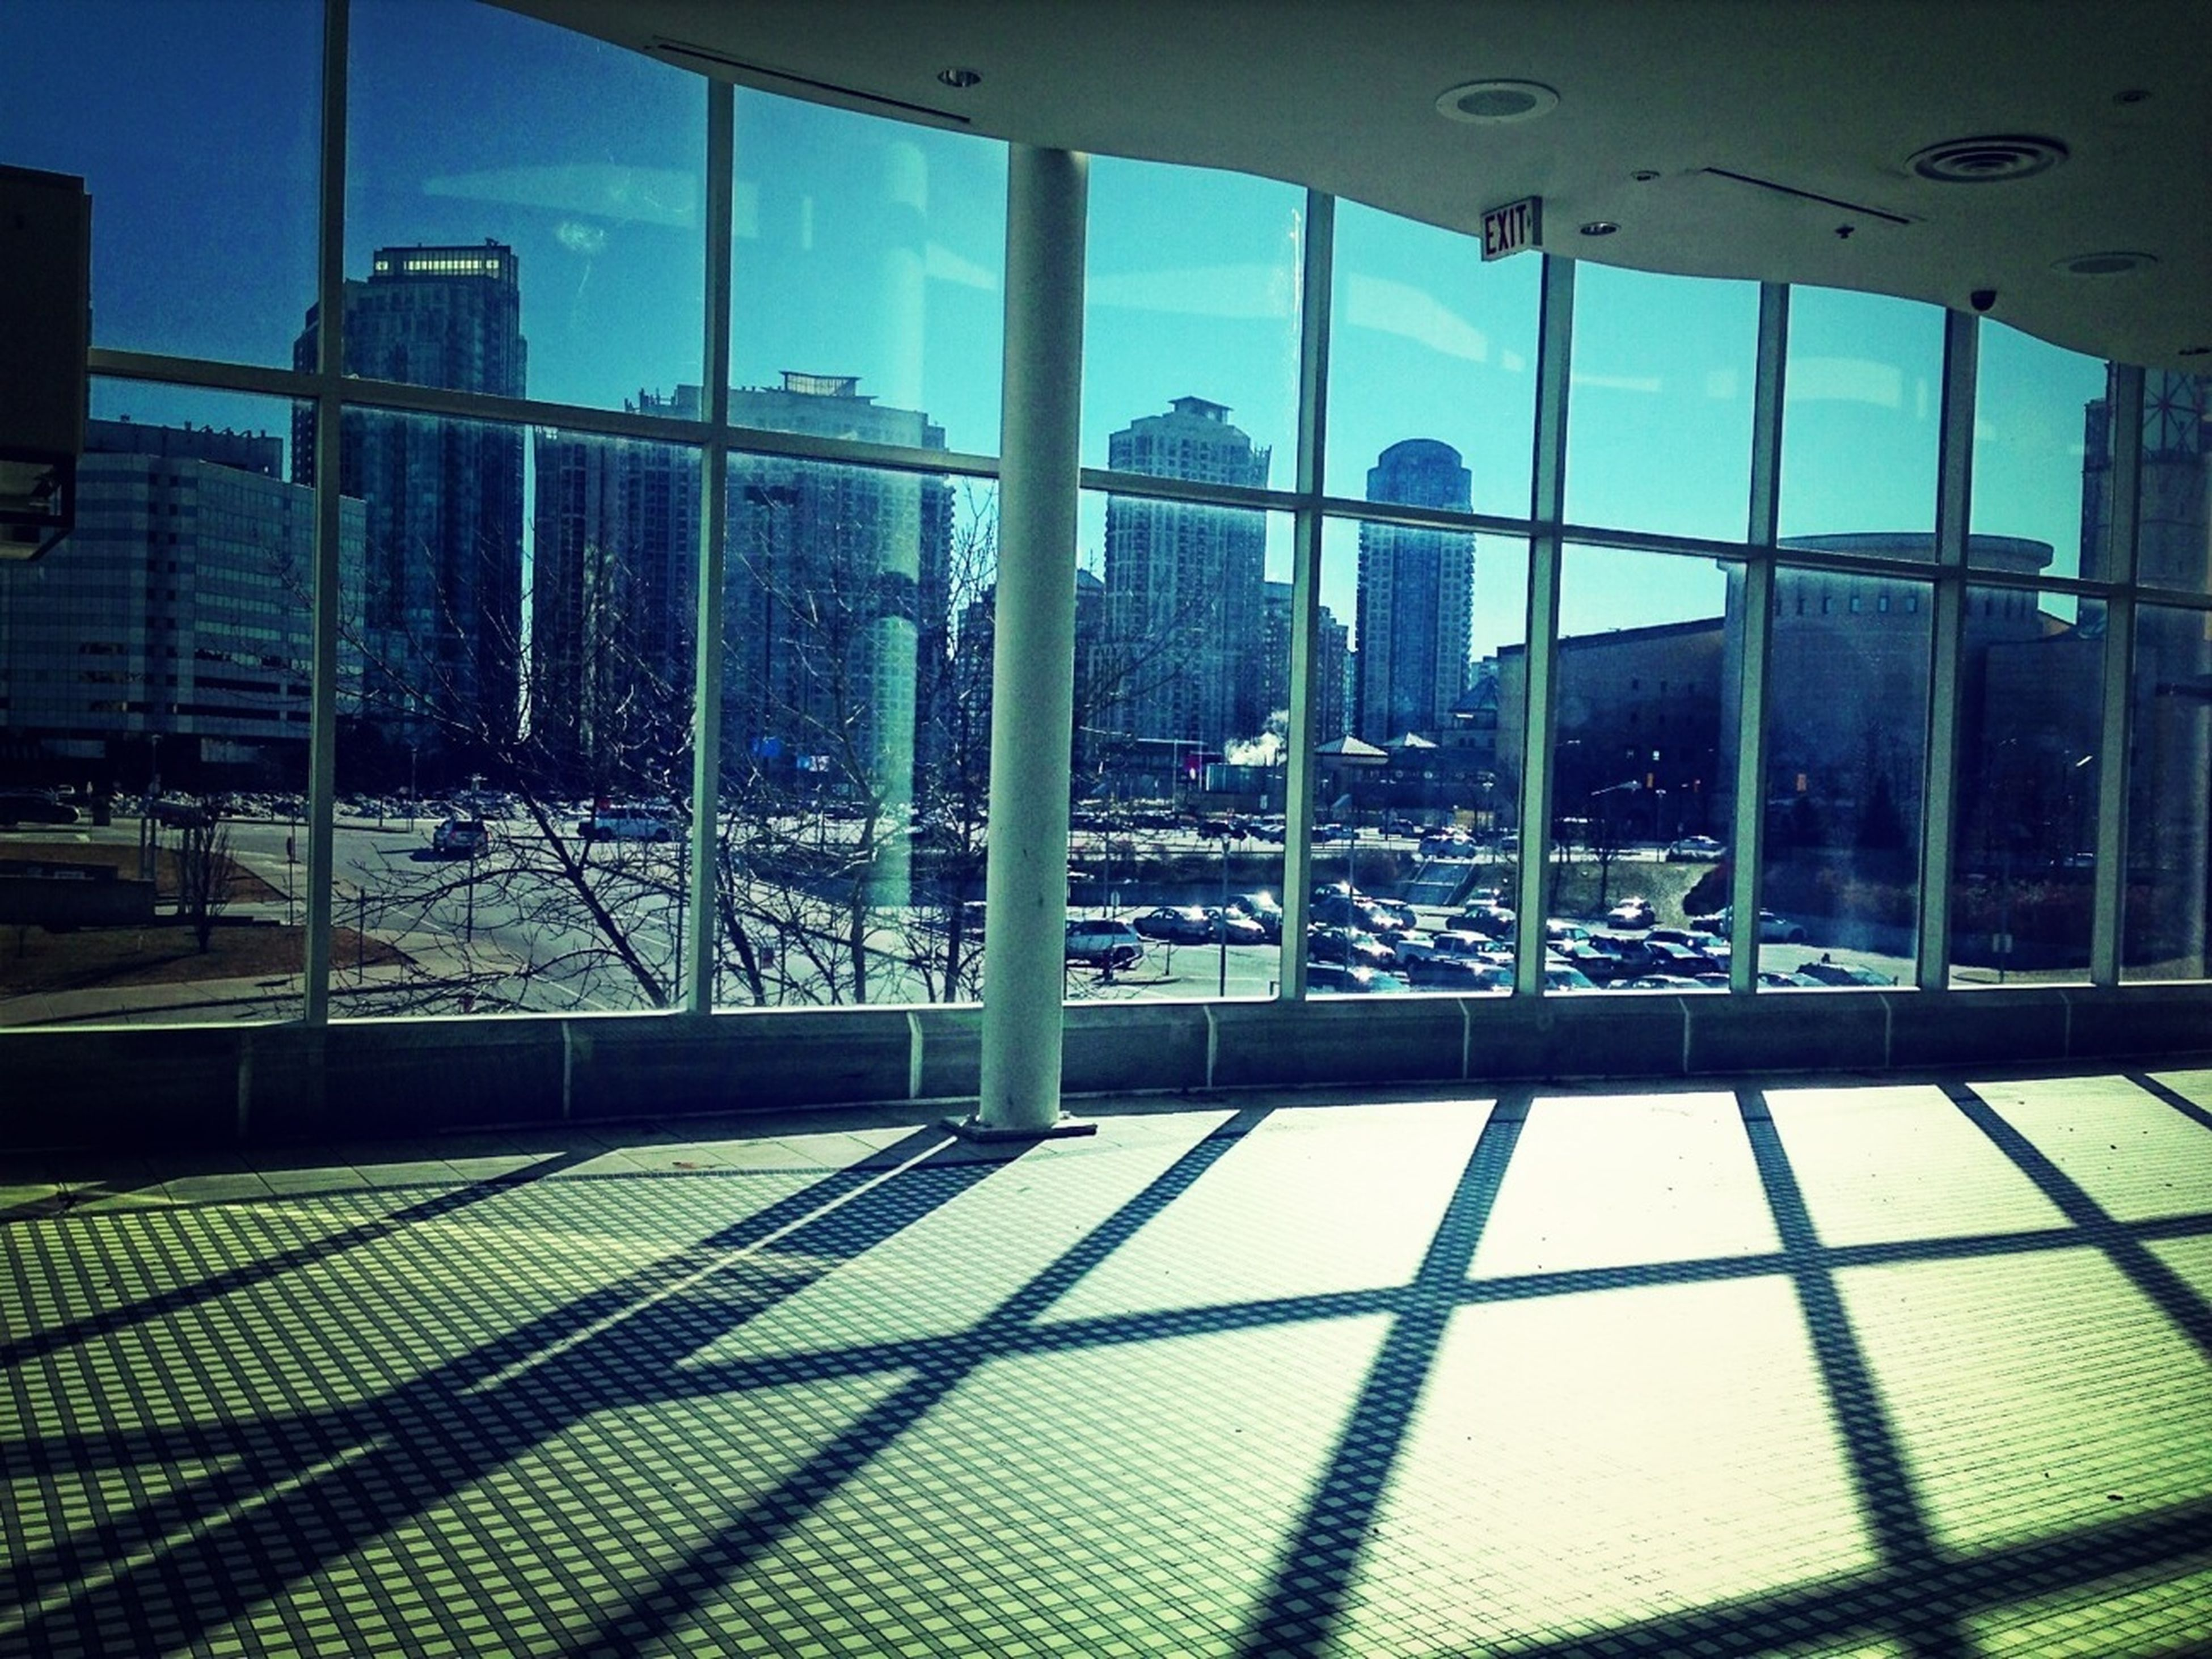 architecture, indoors, built structure, glass - material, window, transparent, building exterior, modern, city, sunlight, chair, blue, empty, absence, day, shadow, office building, reflection, glass, railing